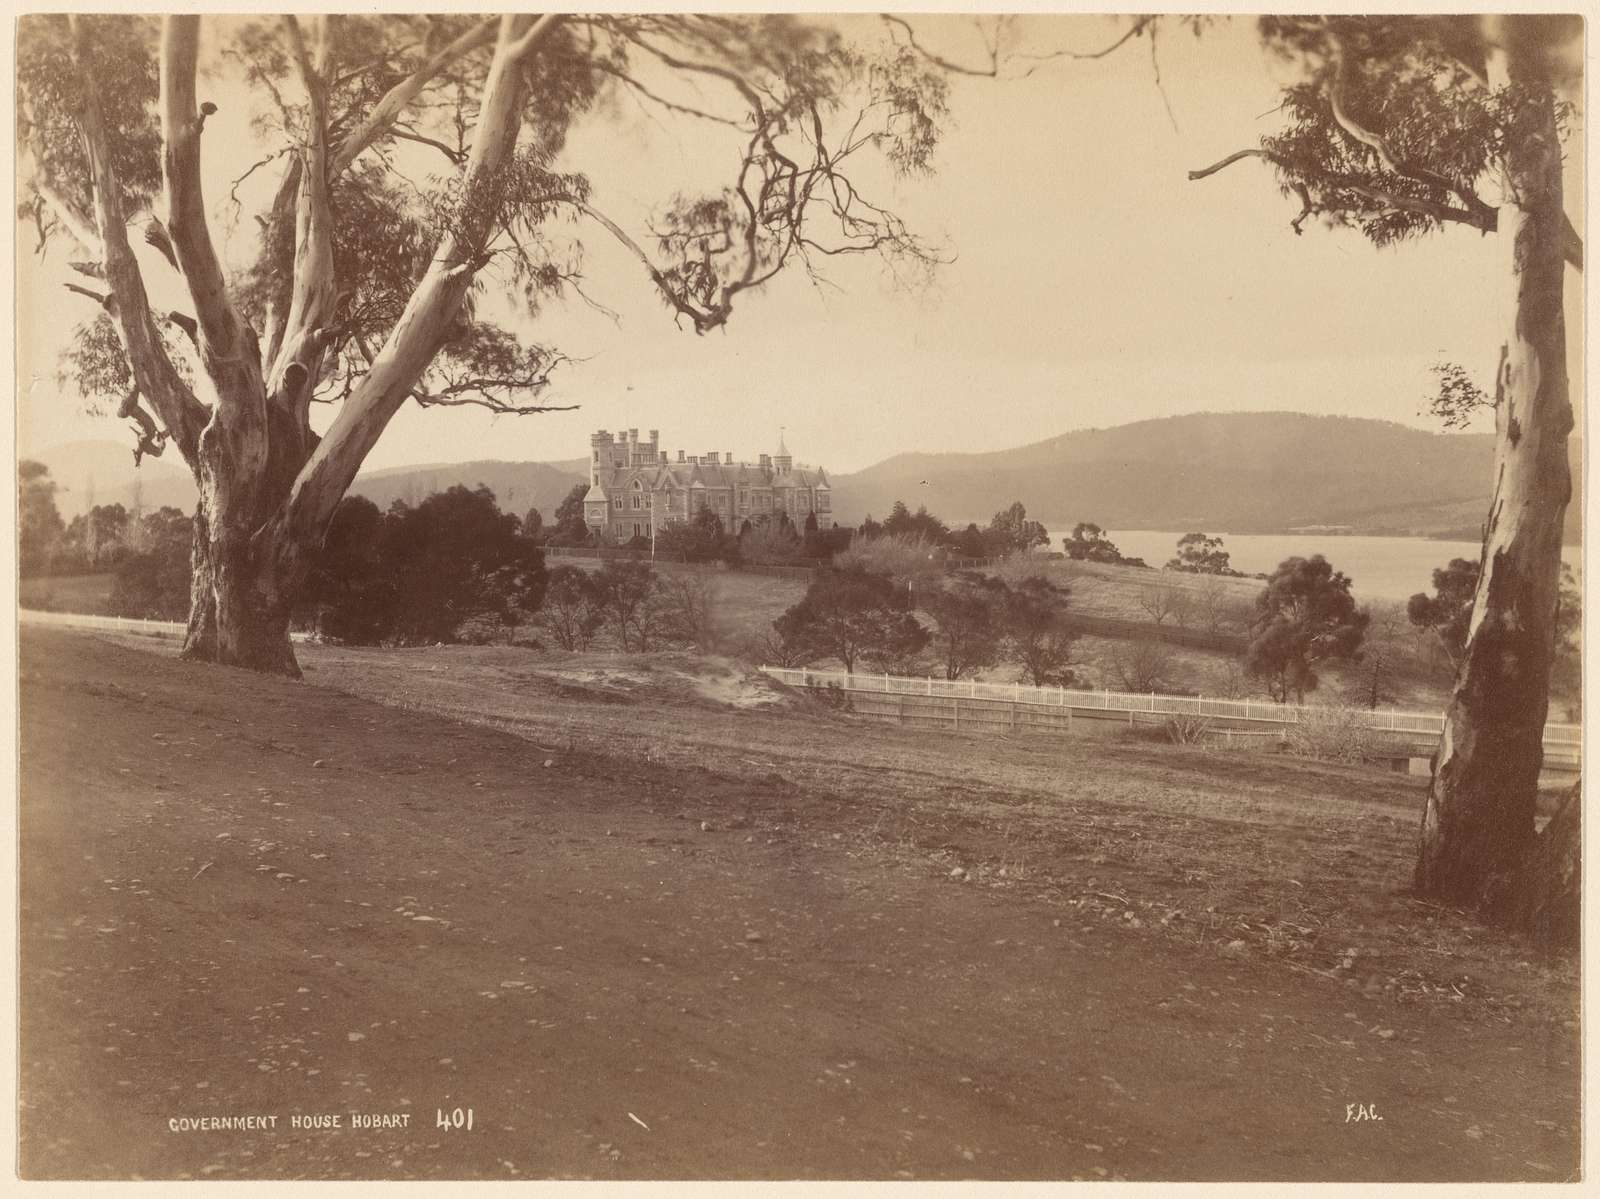 Government House. Hobart